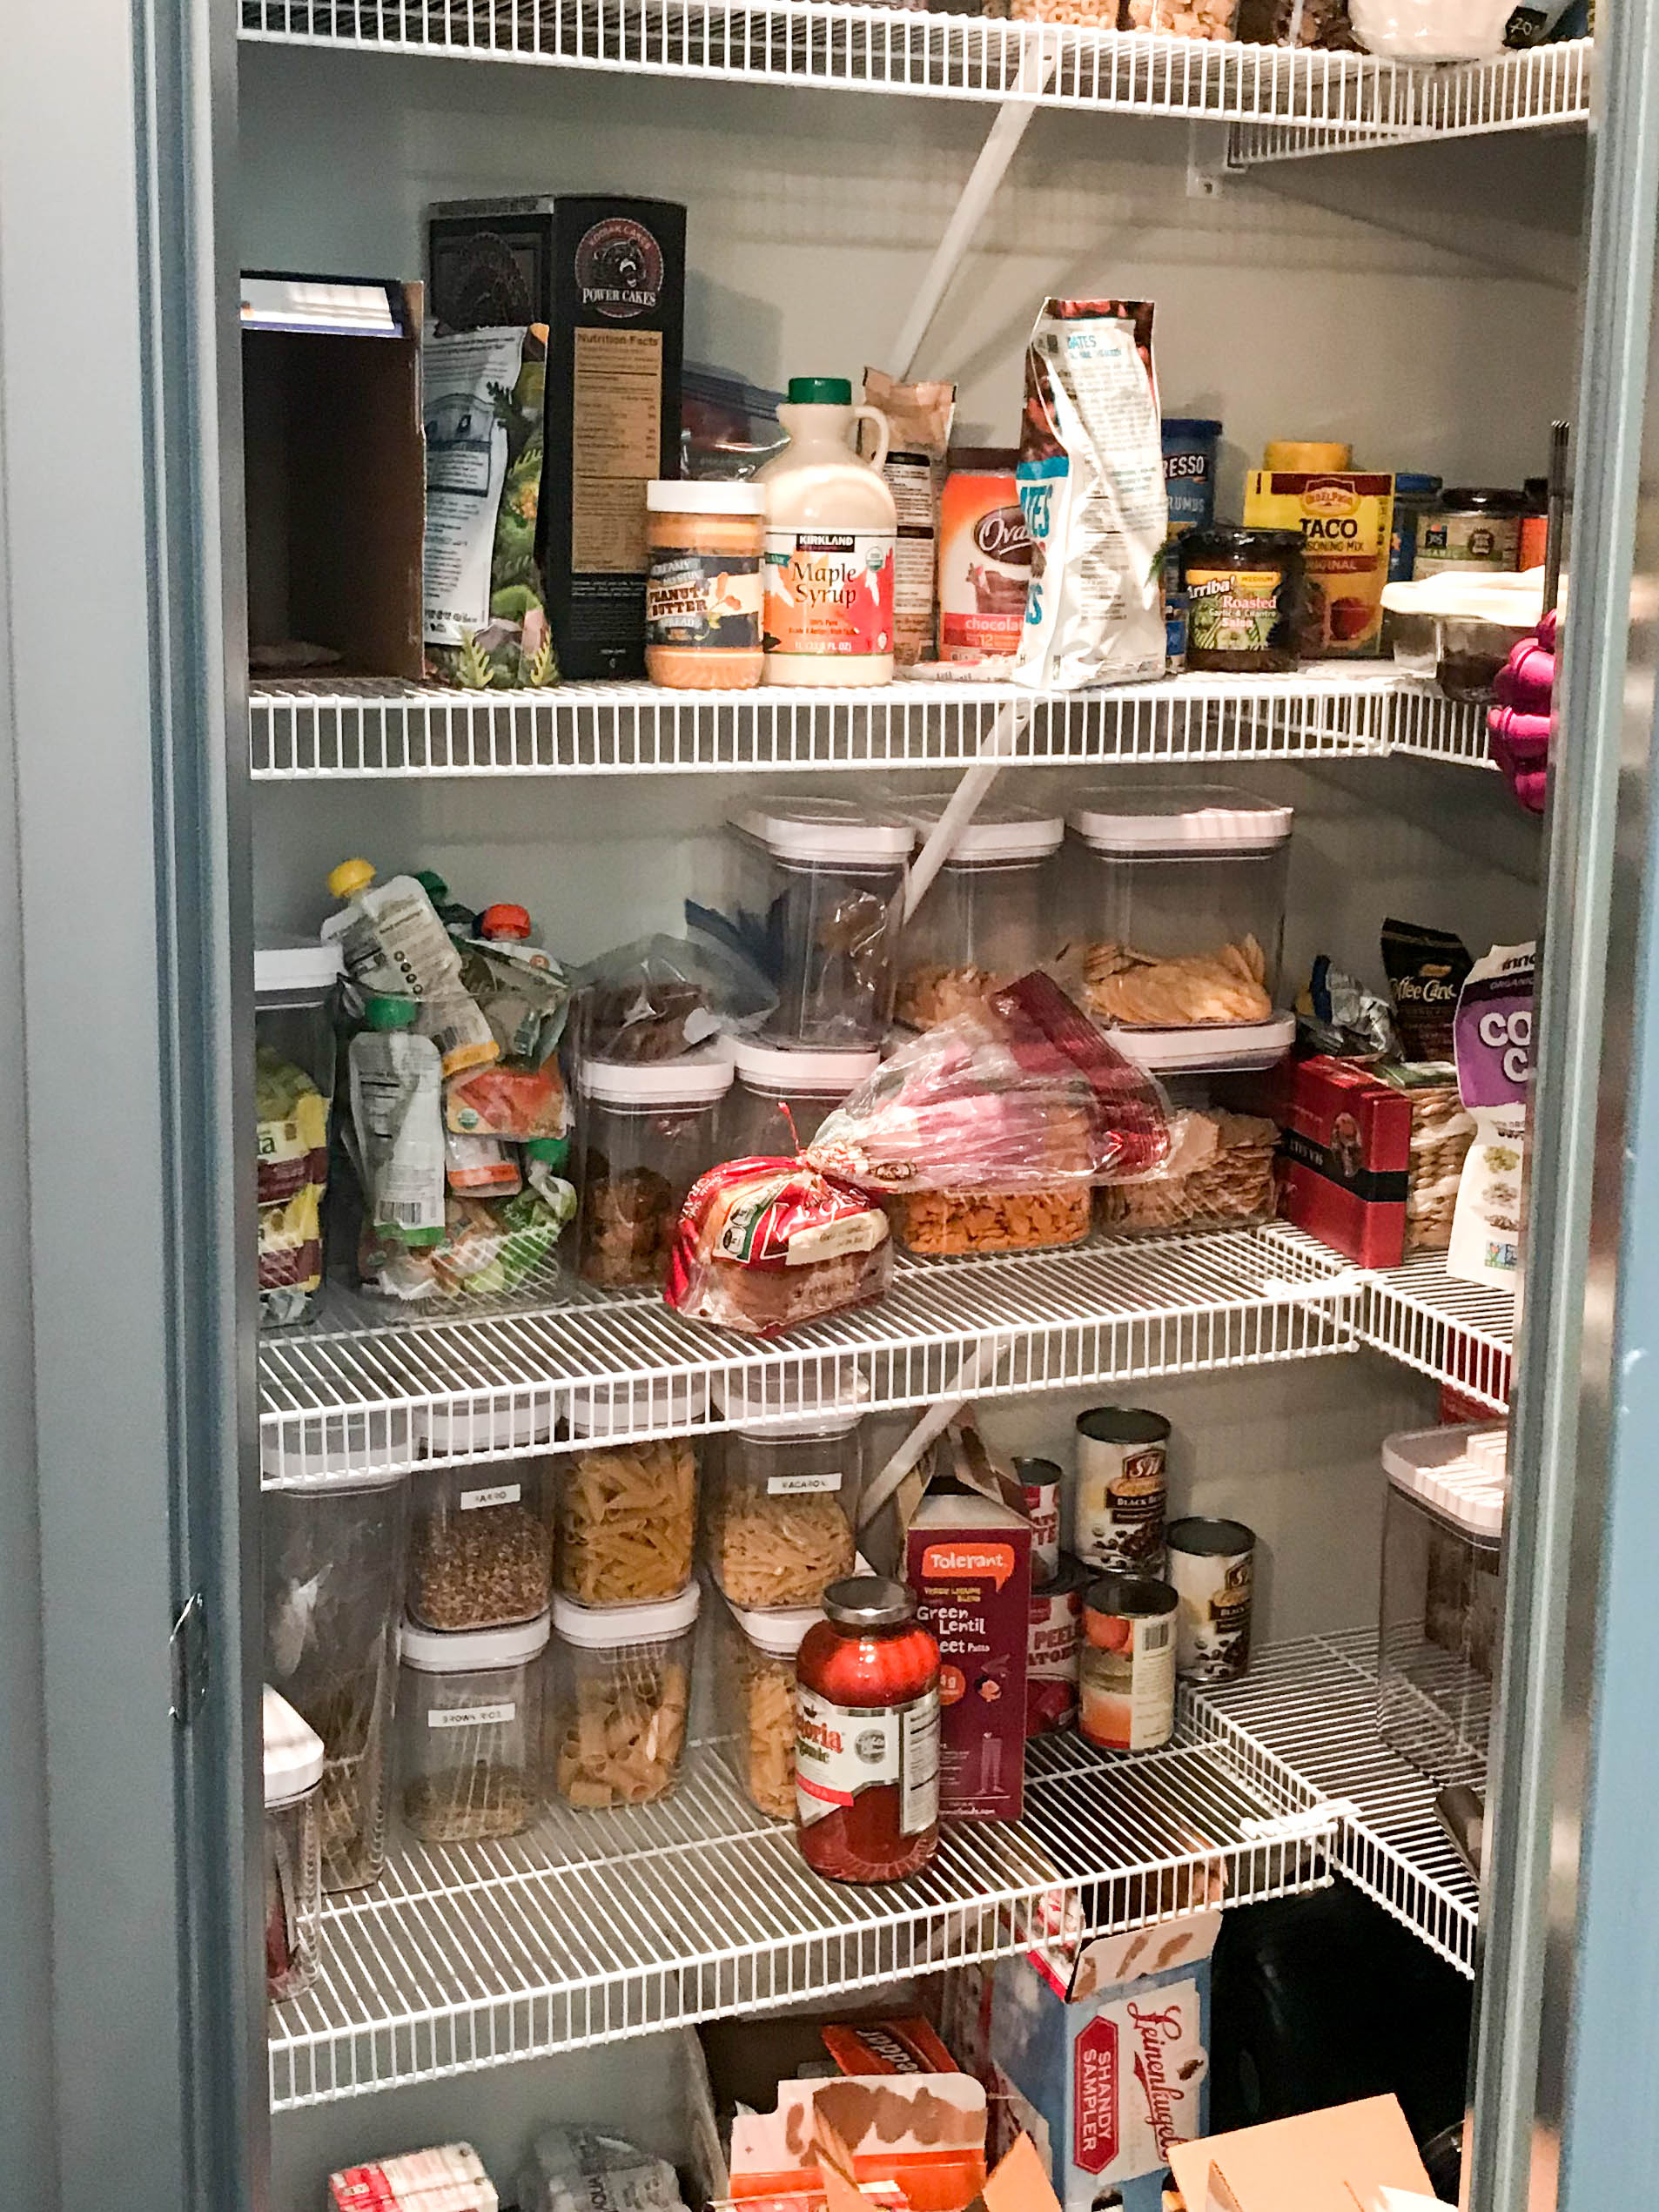 17 DIY Pantry Organization Ideas   The Before! 7 Hacks To Organize Your  Pantry ...